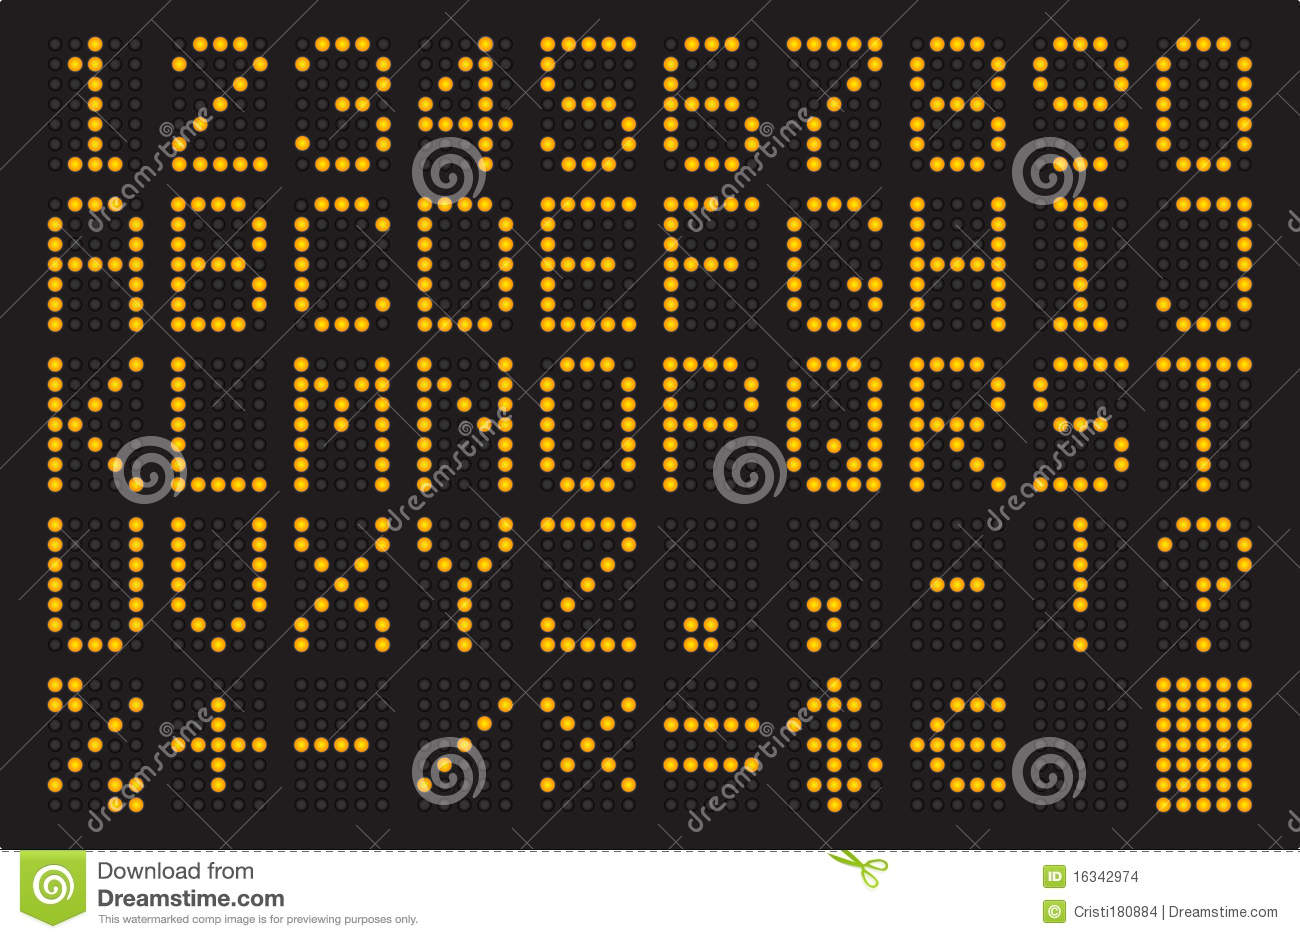 Led light font stock illustration  Illustration of light - 16342974